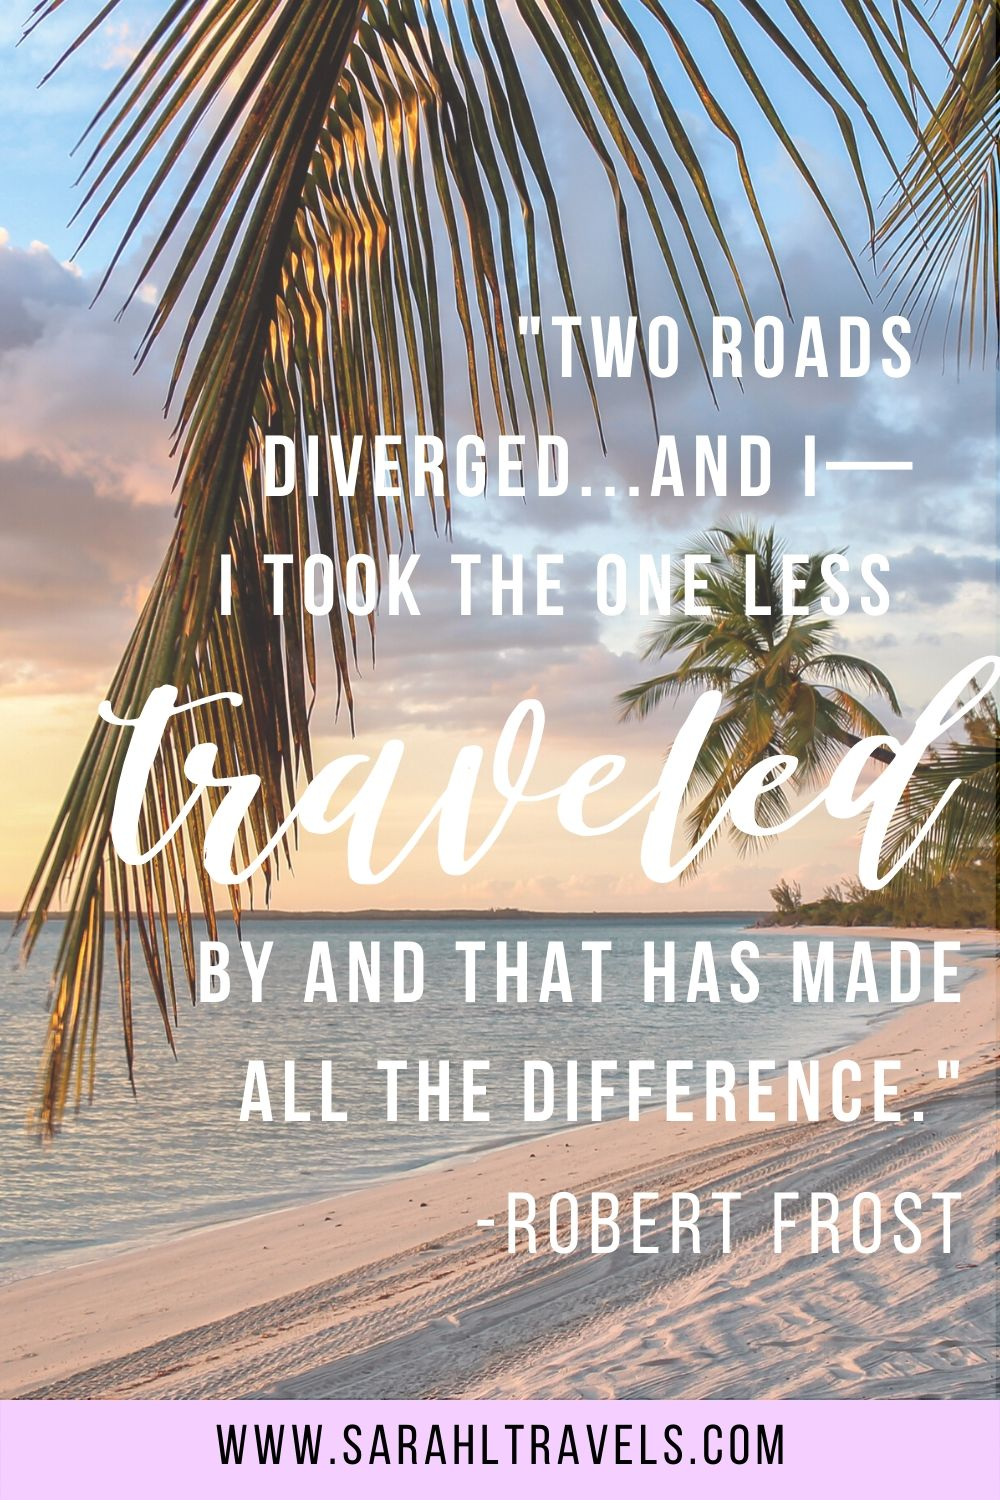 """Palm tree and beach with quote """"Two roads diverged, and I took the one less traveled by and that has made all the difference."""""""